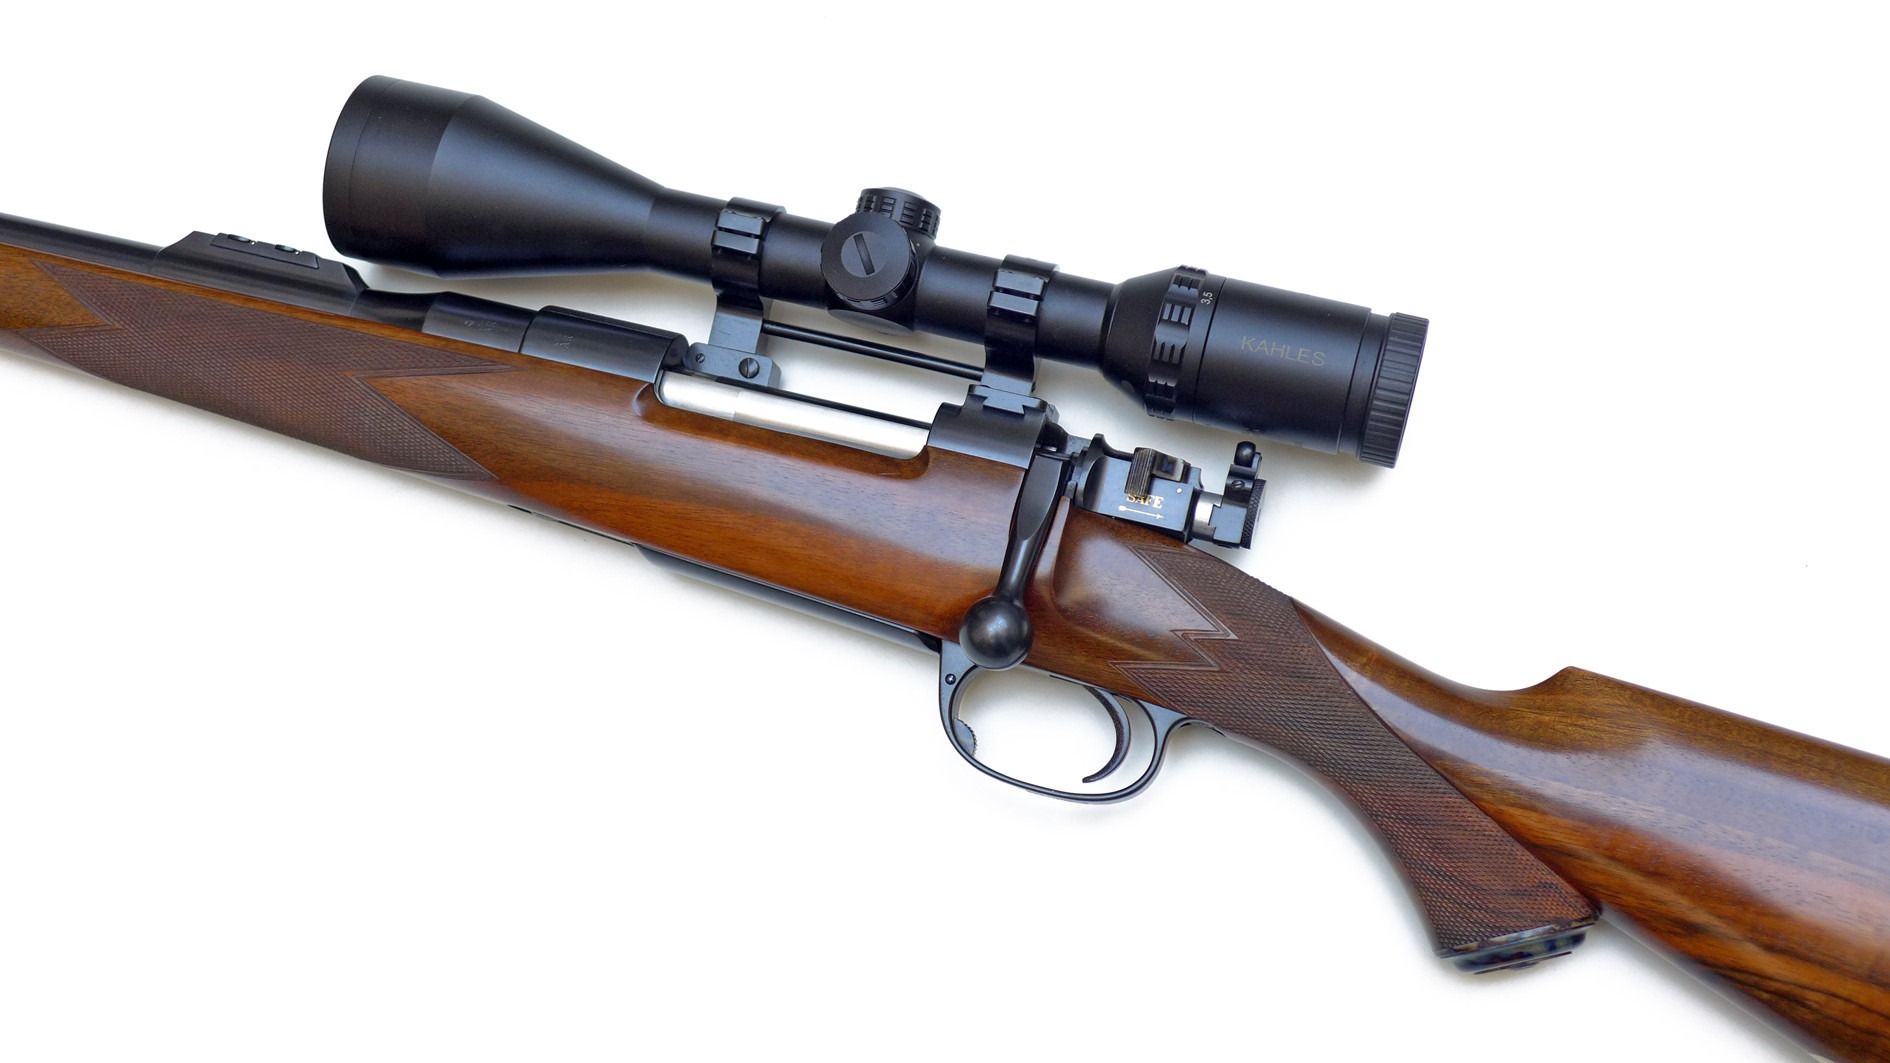 Kahles scope on a 275 Rigby rifle. (picture courtesy of africahunting.com)